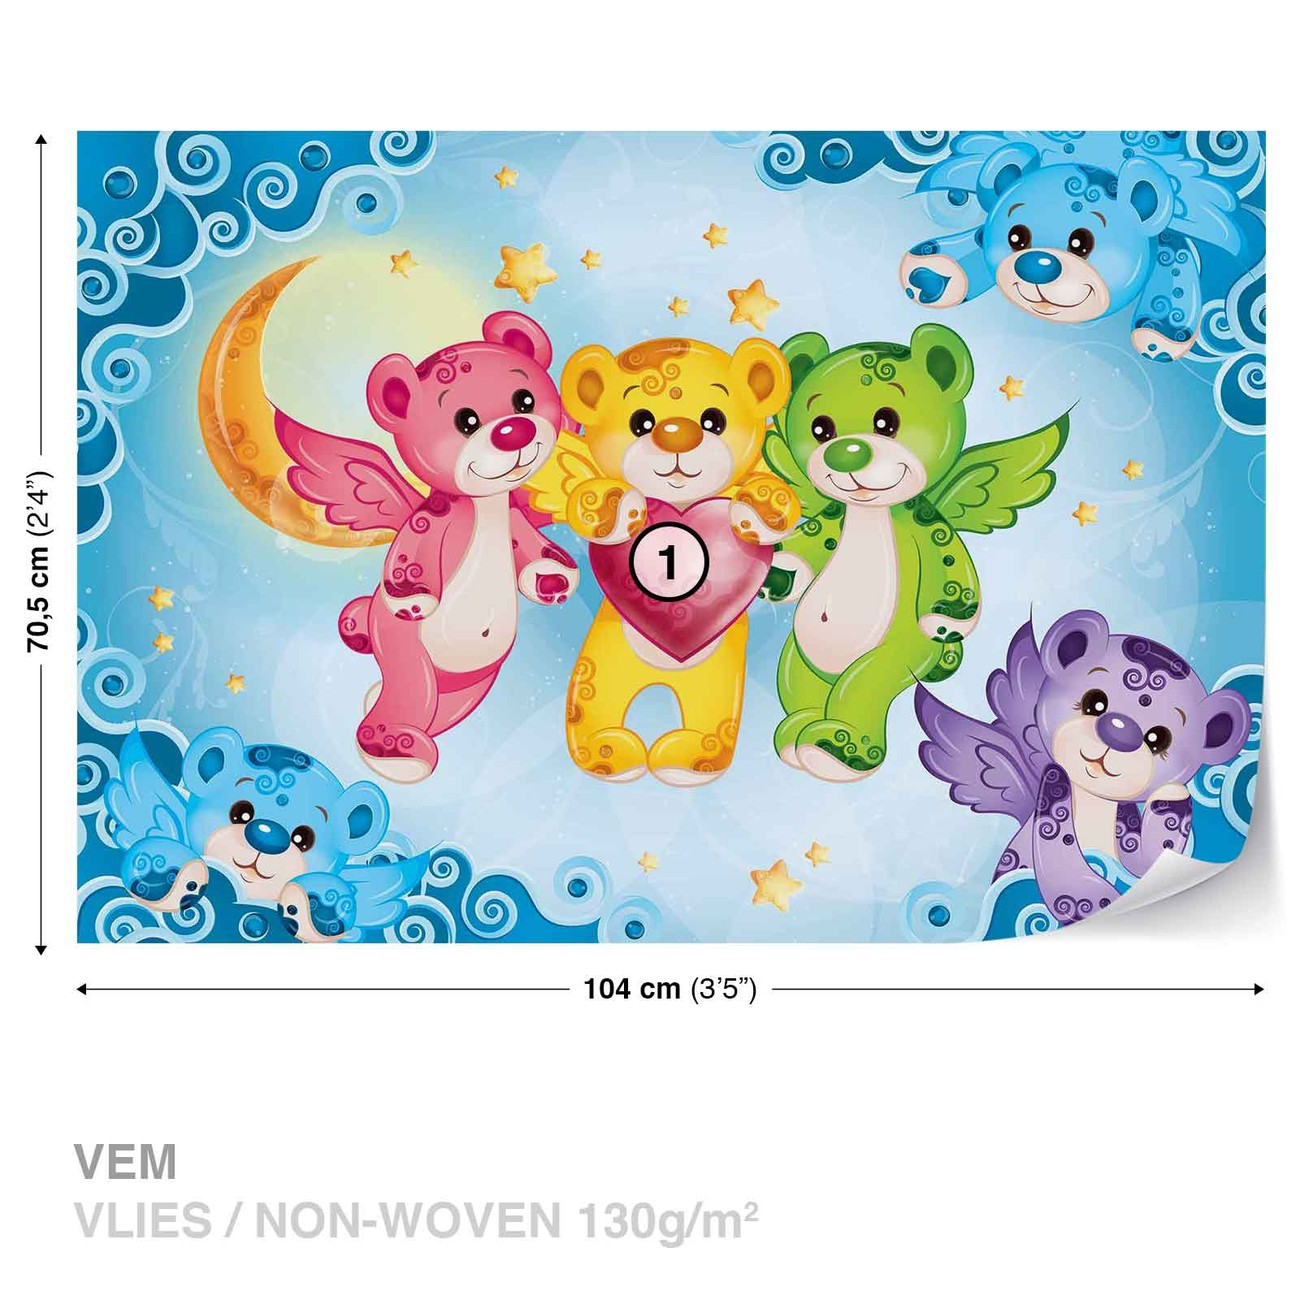 Care bears heart wall paper mural buy at for Care bears wall mural